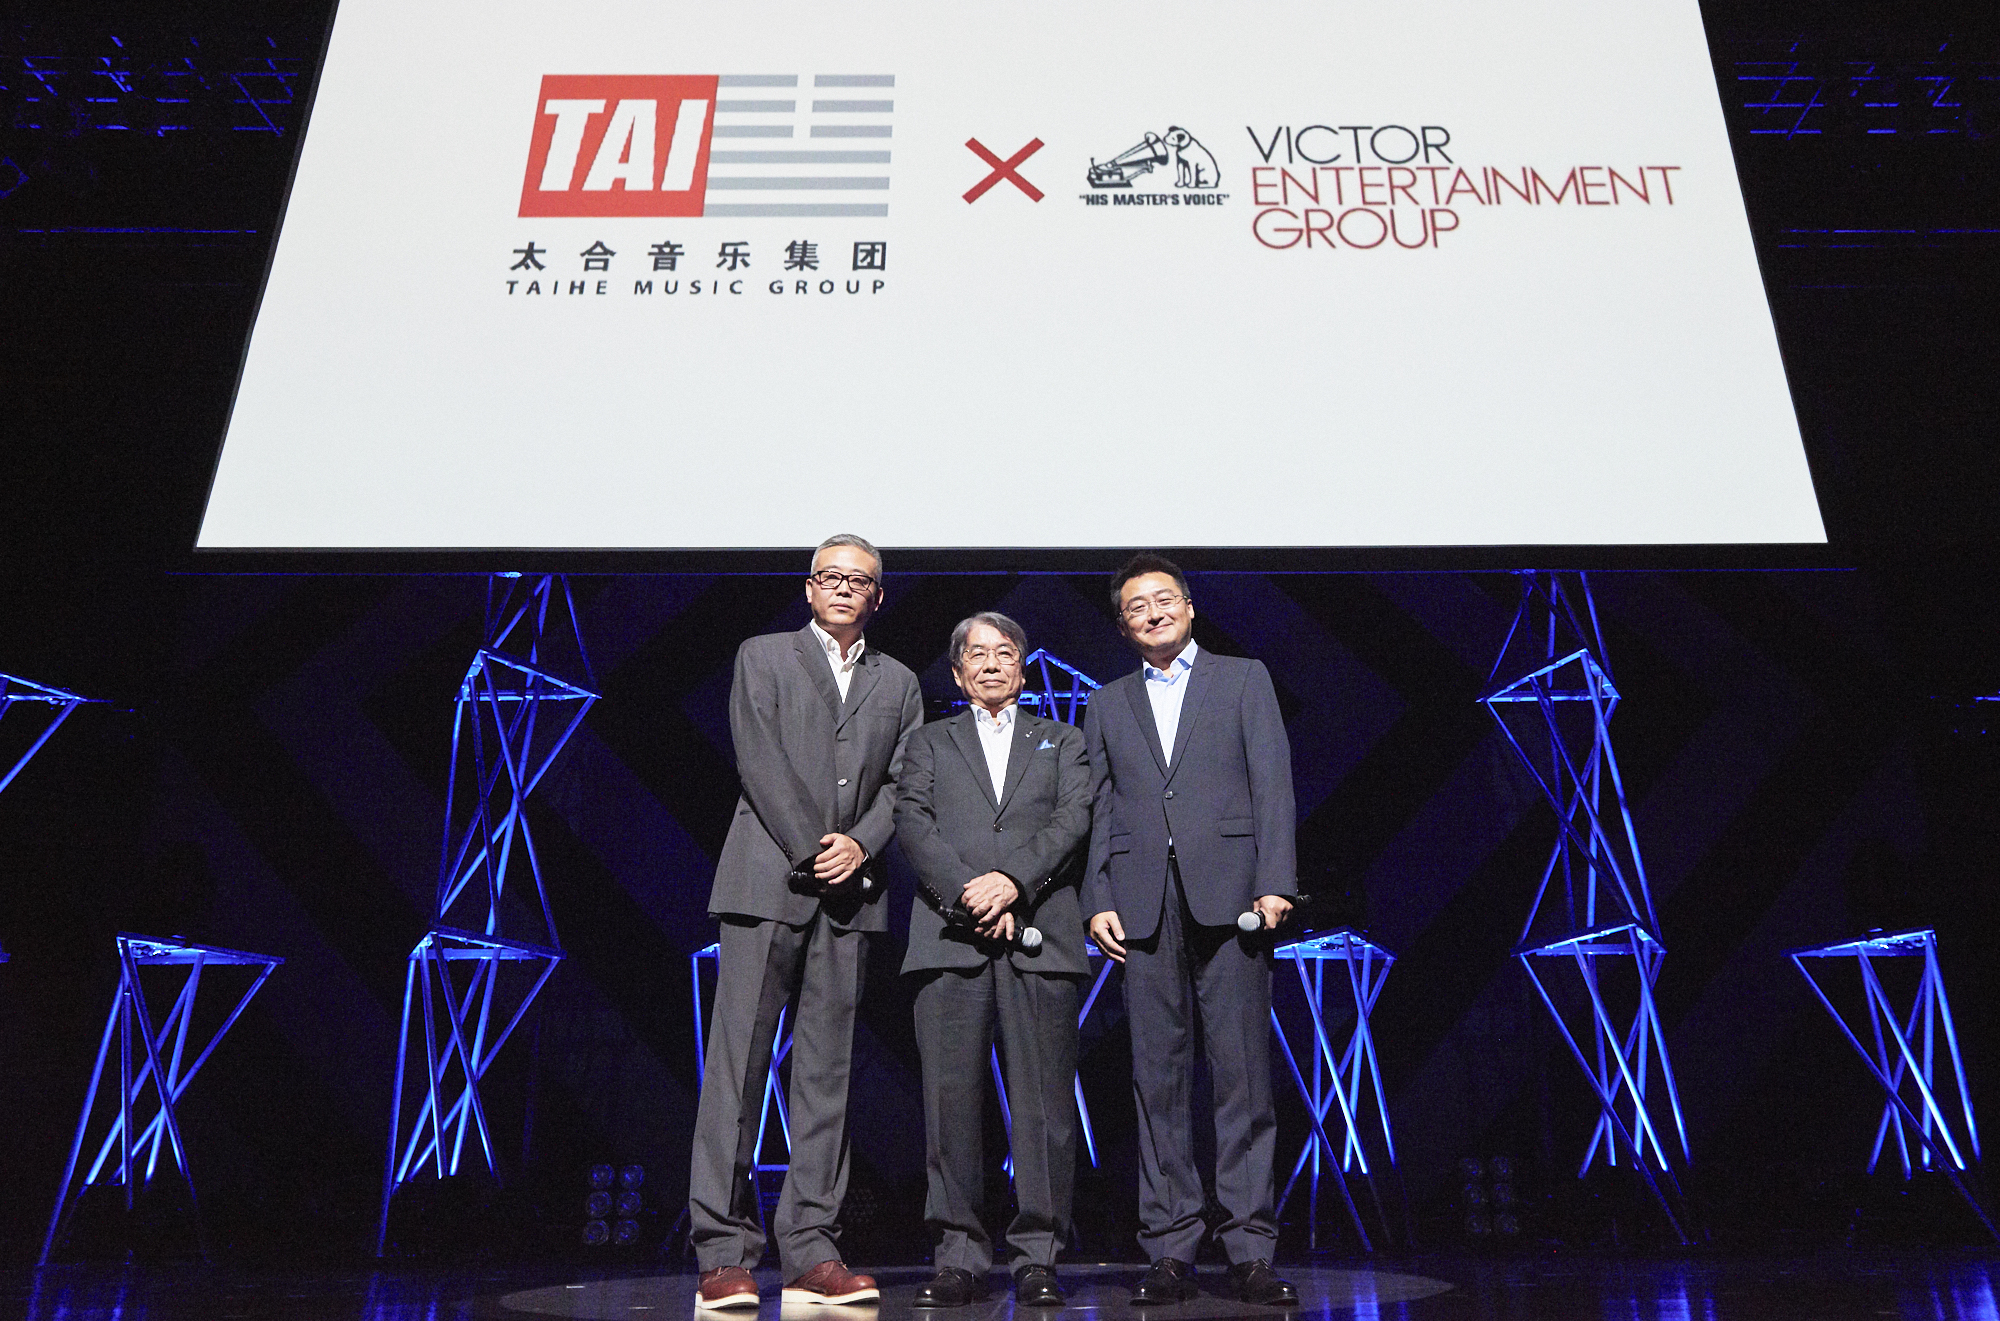 Japan's Victor and China's Taihe Music Group Sign Content Partnership